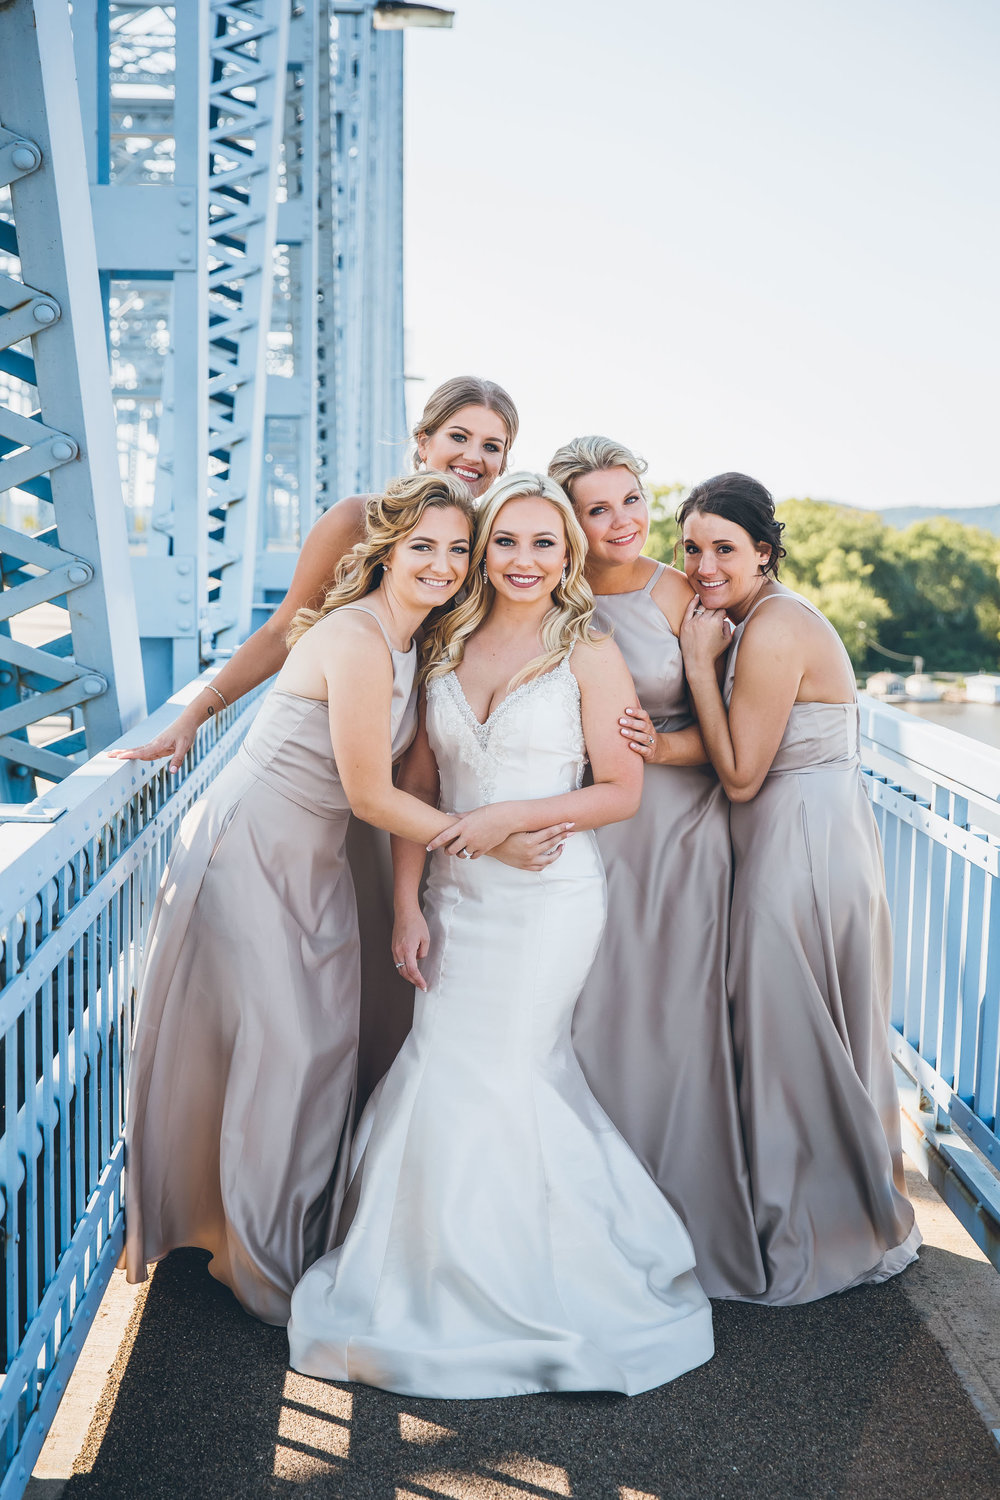 Cass street bridge wedding photography